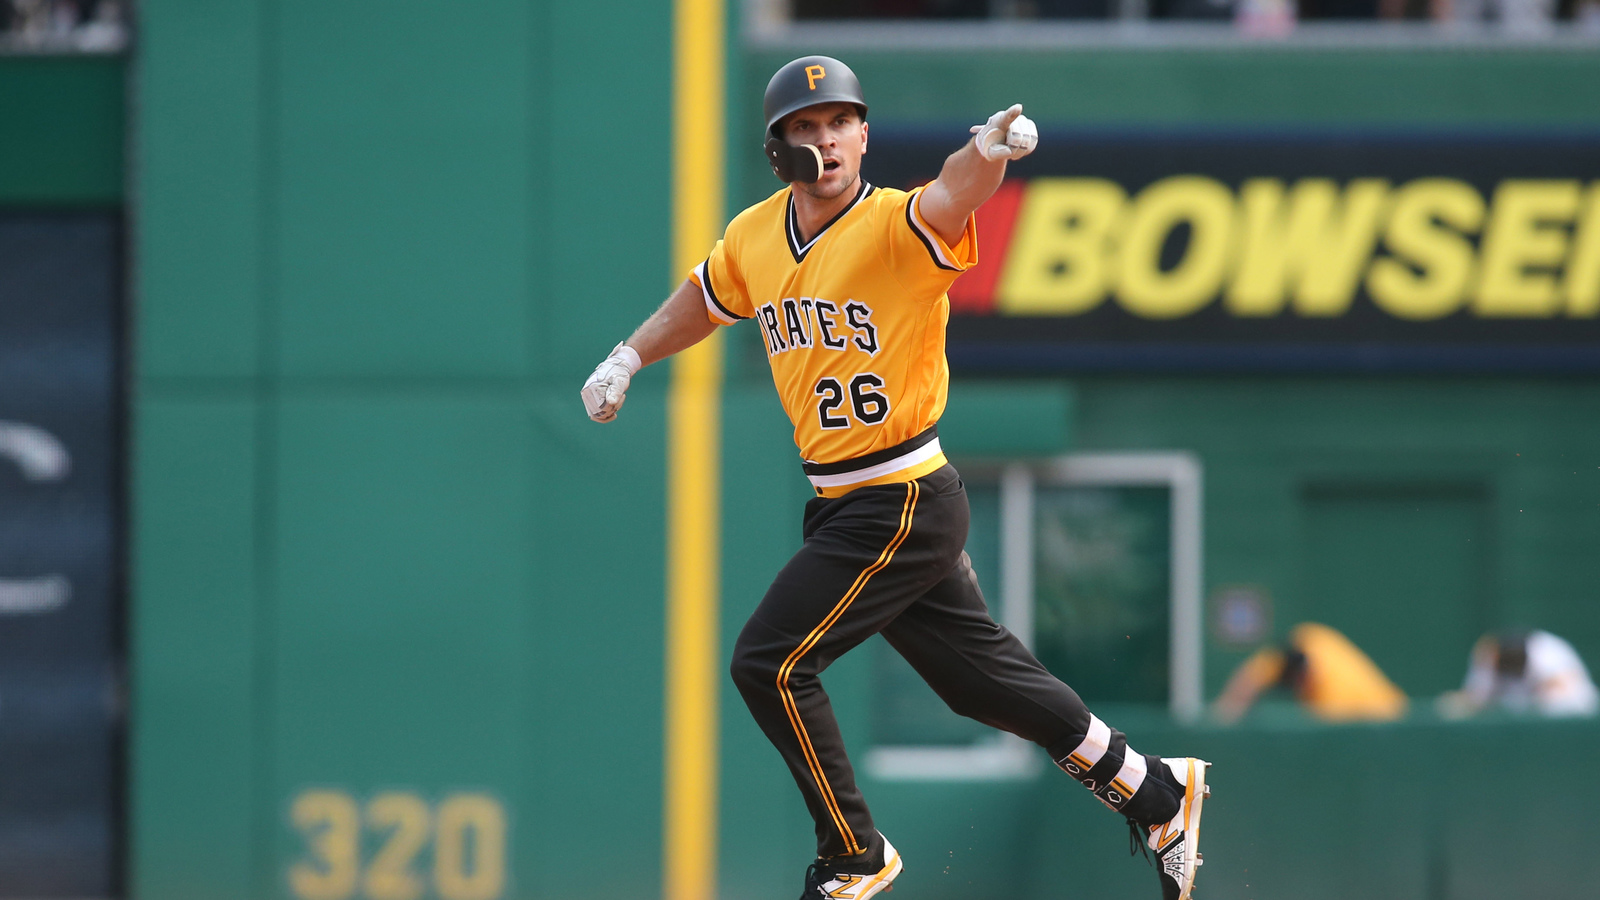 c50f75f8e Pirates and Cubs will play in 2019 Little League Classic - Chicago Sports  News